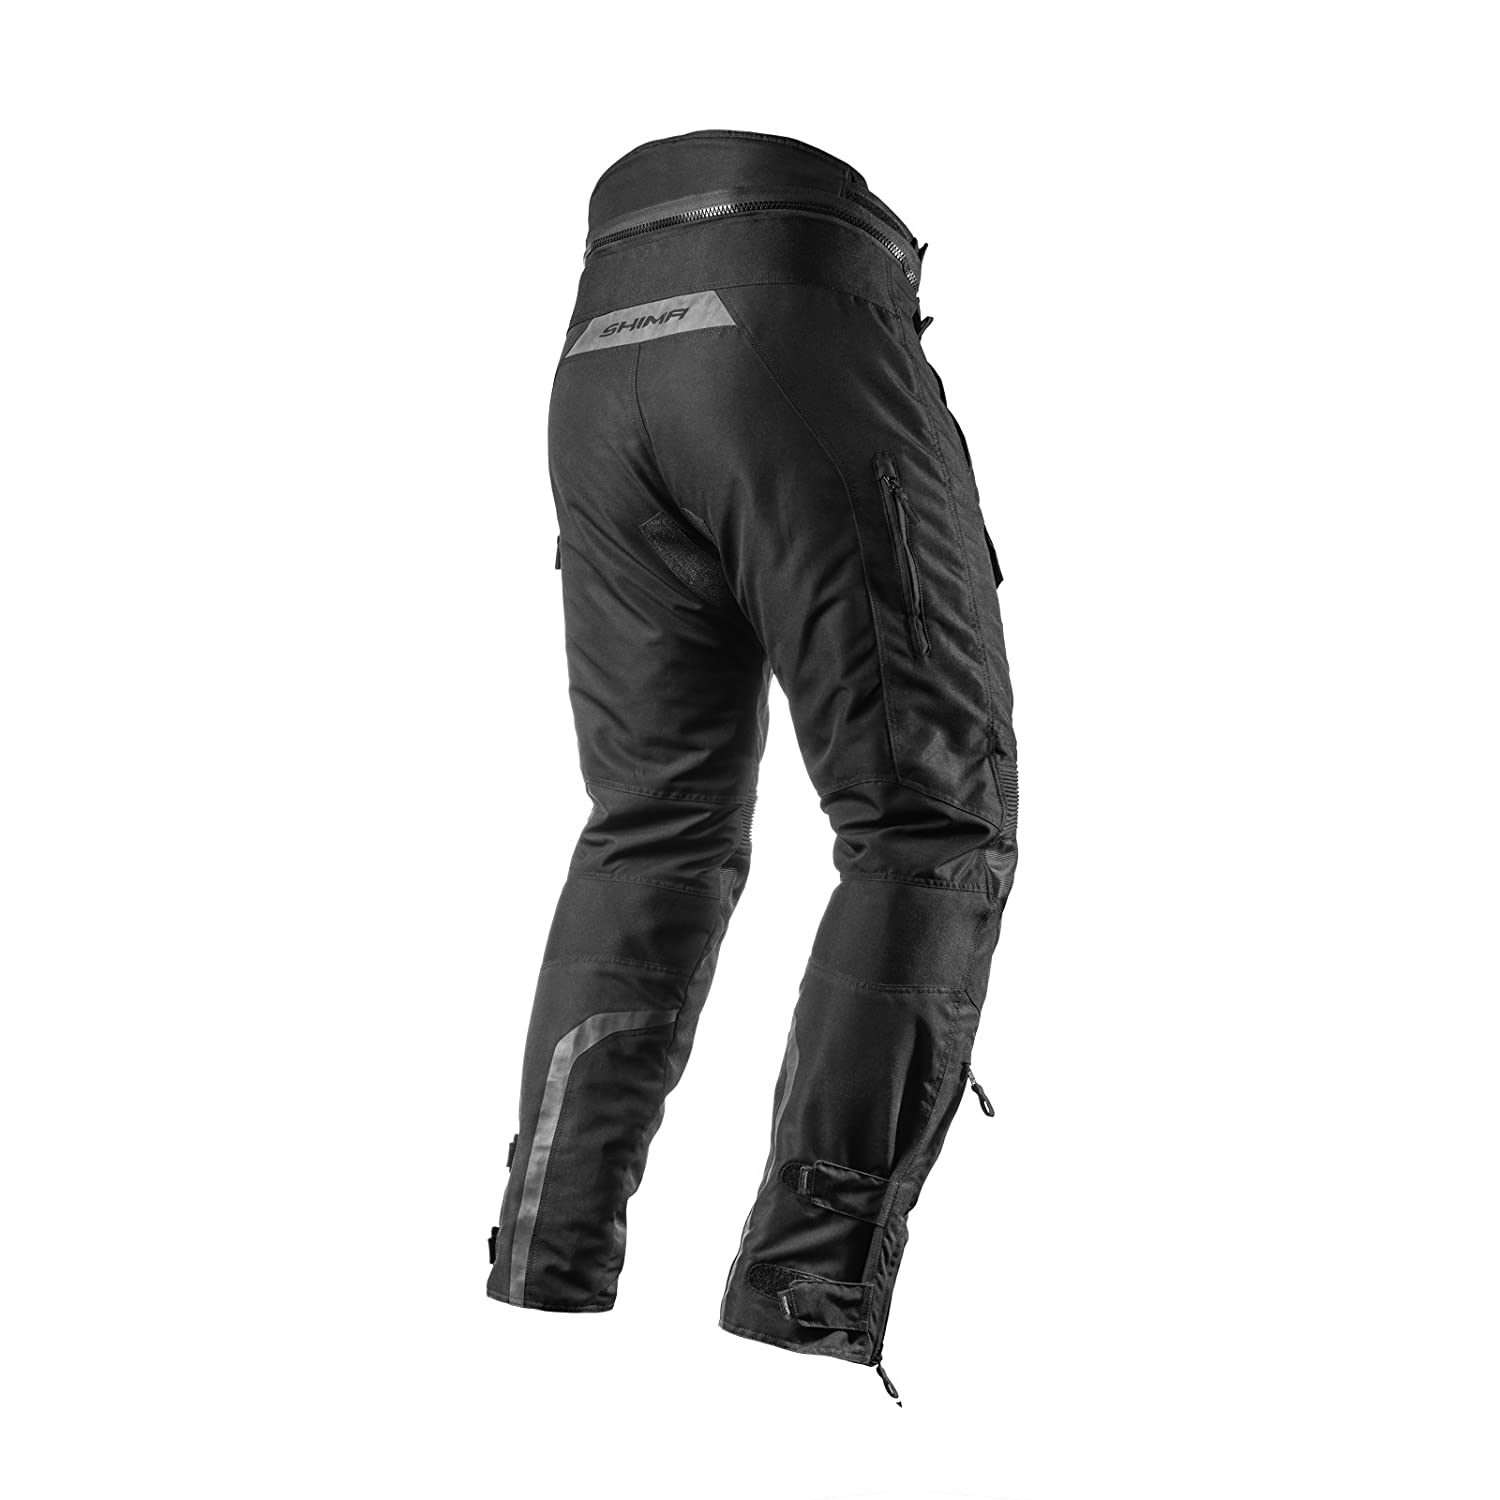 Shima Rift Waterproof Touring X de Shell Protectors Motorcycle Trousers S de 3/ x l